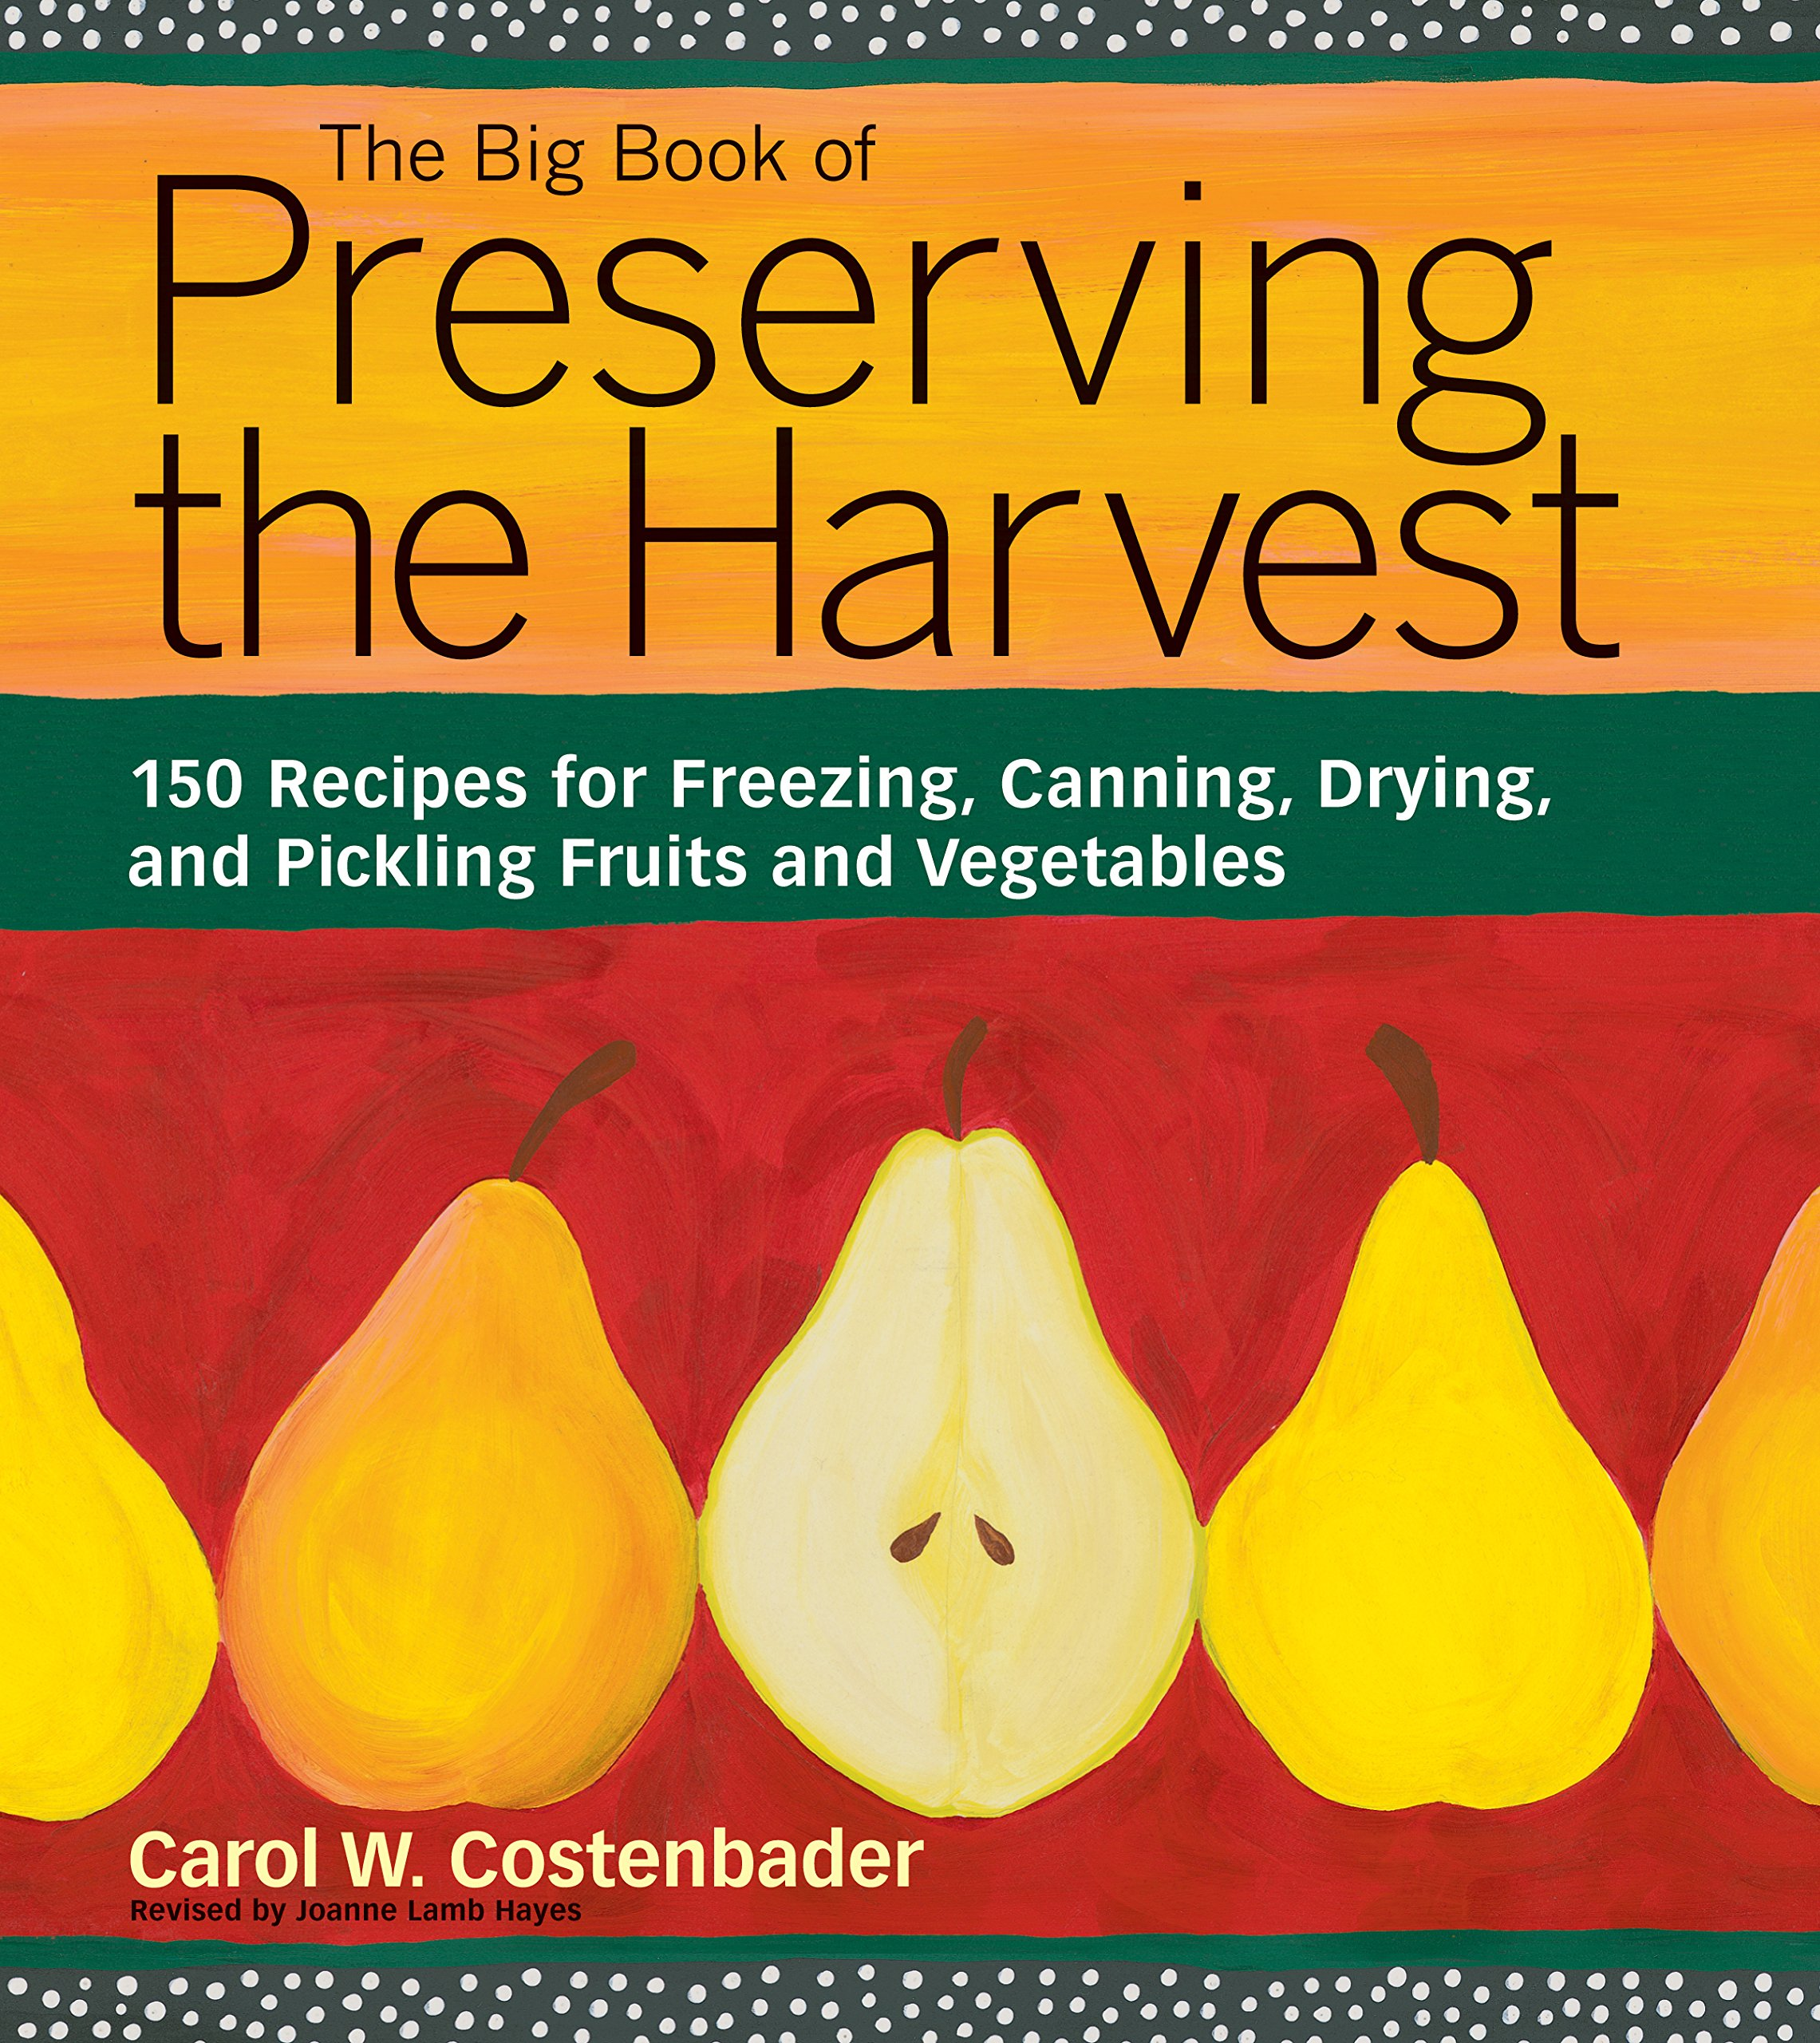 The Big Book of Preserving the Harvest: 150 Recipes for Freezing, Canning, Drying and Pickling Fruits and Vegetables PDF